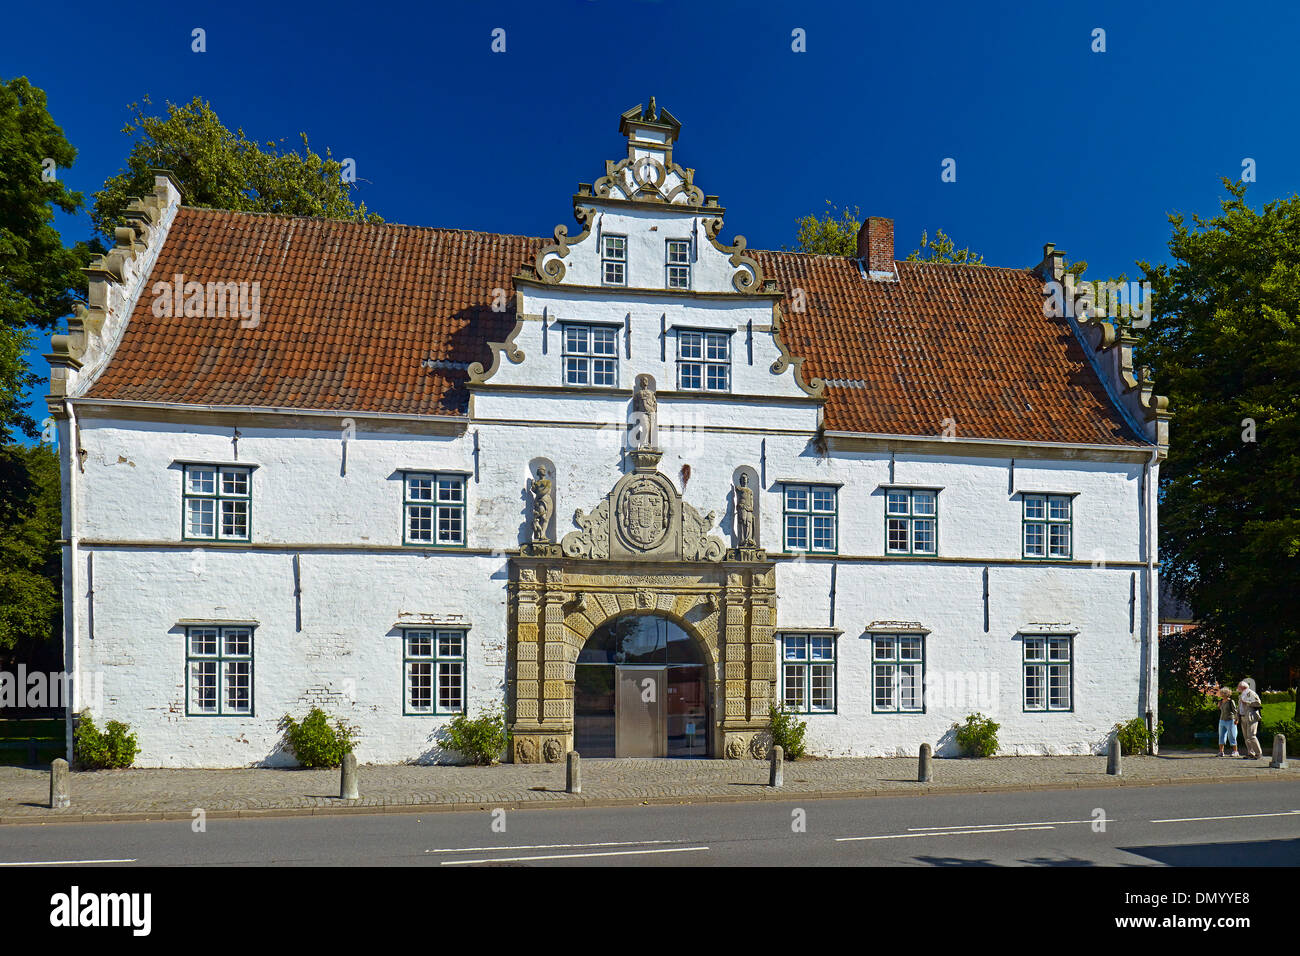 Gatehouse of Husum Castle, district of North Friesland, Schleswig-Holstein, Germany - Stock Image